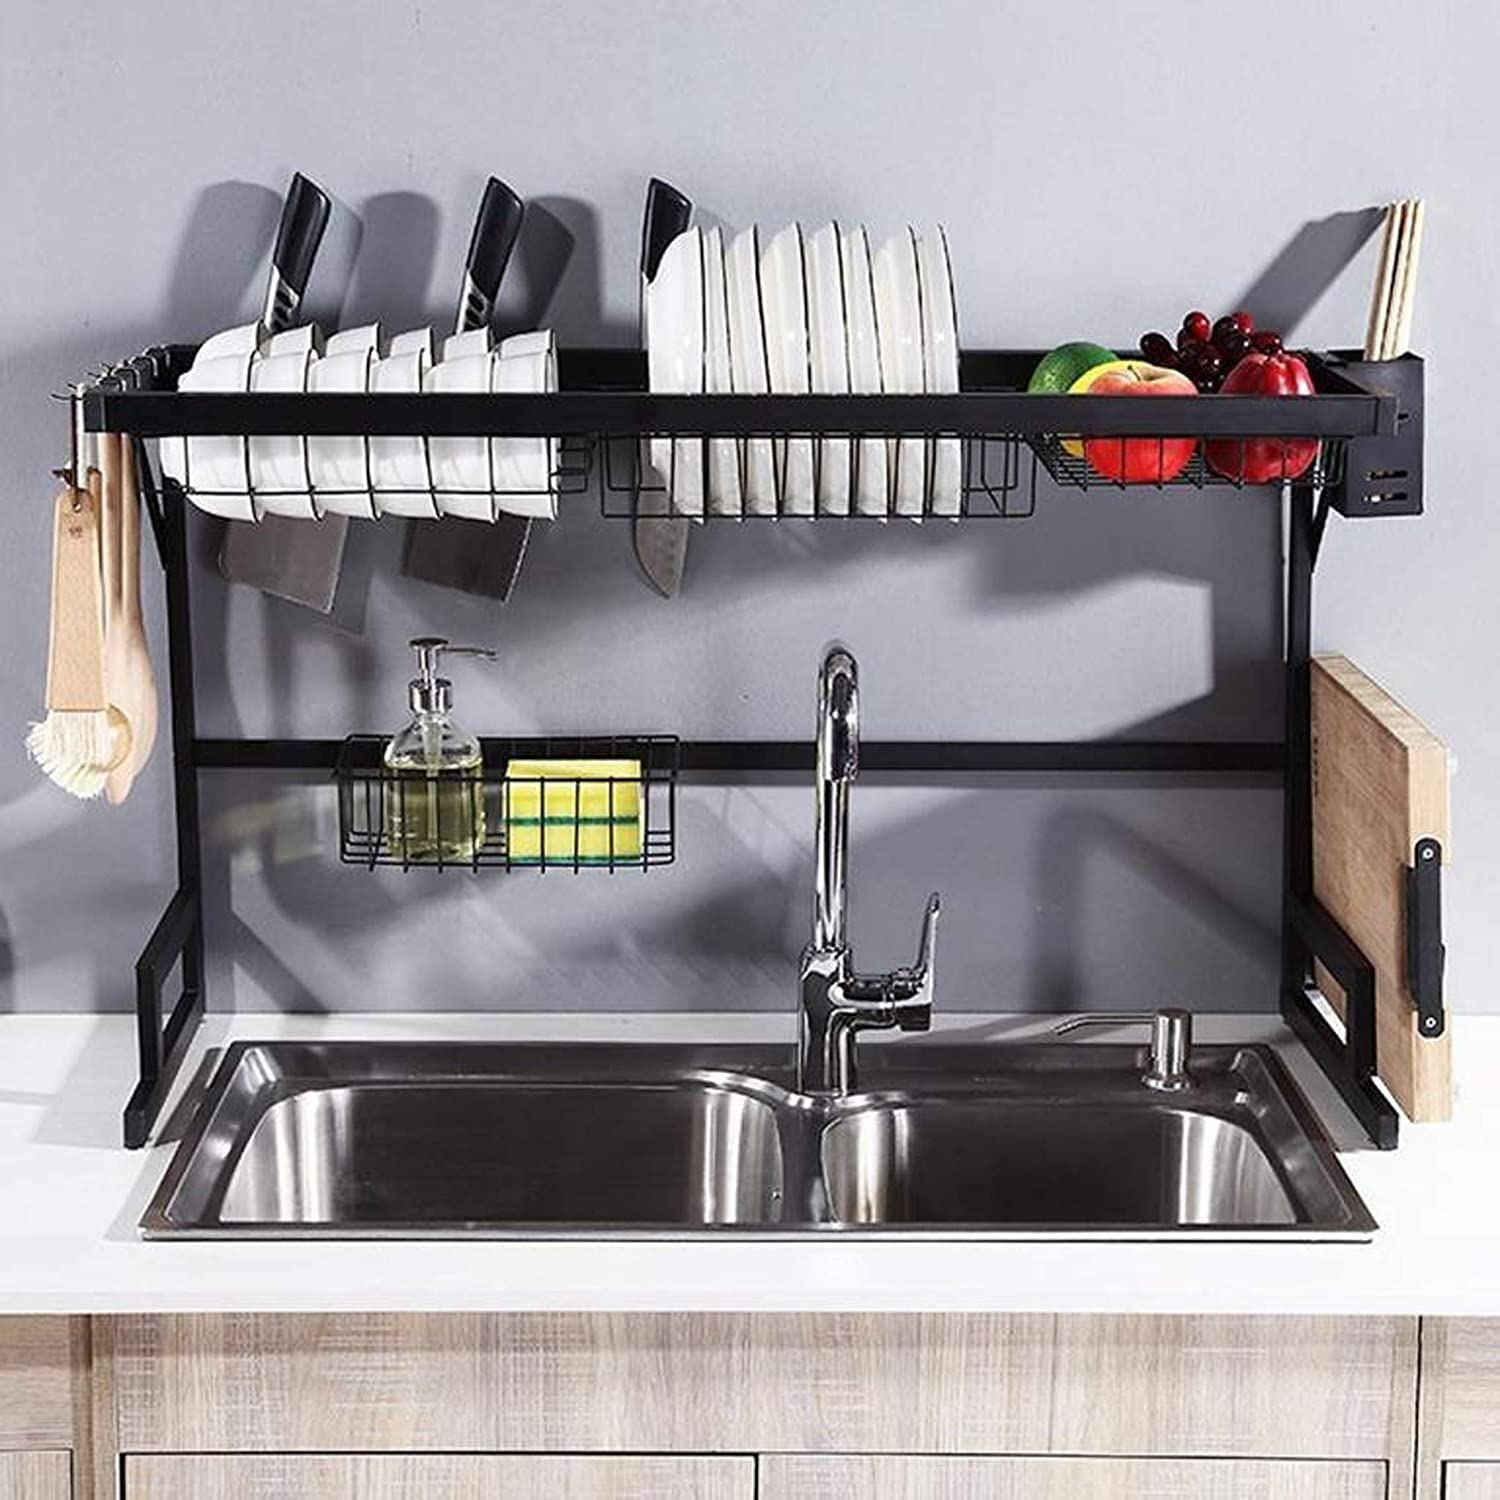 Amazon Com Dish Drying Rack Over Sink Drainer Shelf For Kitchen Drying Rack Organizer Supplies Storage Counter Kitchen Space Saver Must Have Utensils Holder Stainless Steel Sink Size 32 1 2 Inch Black